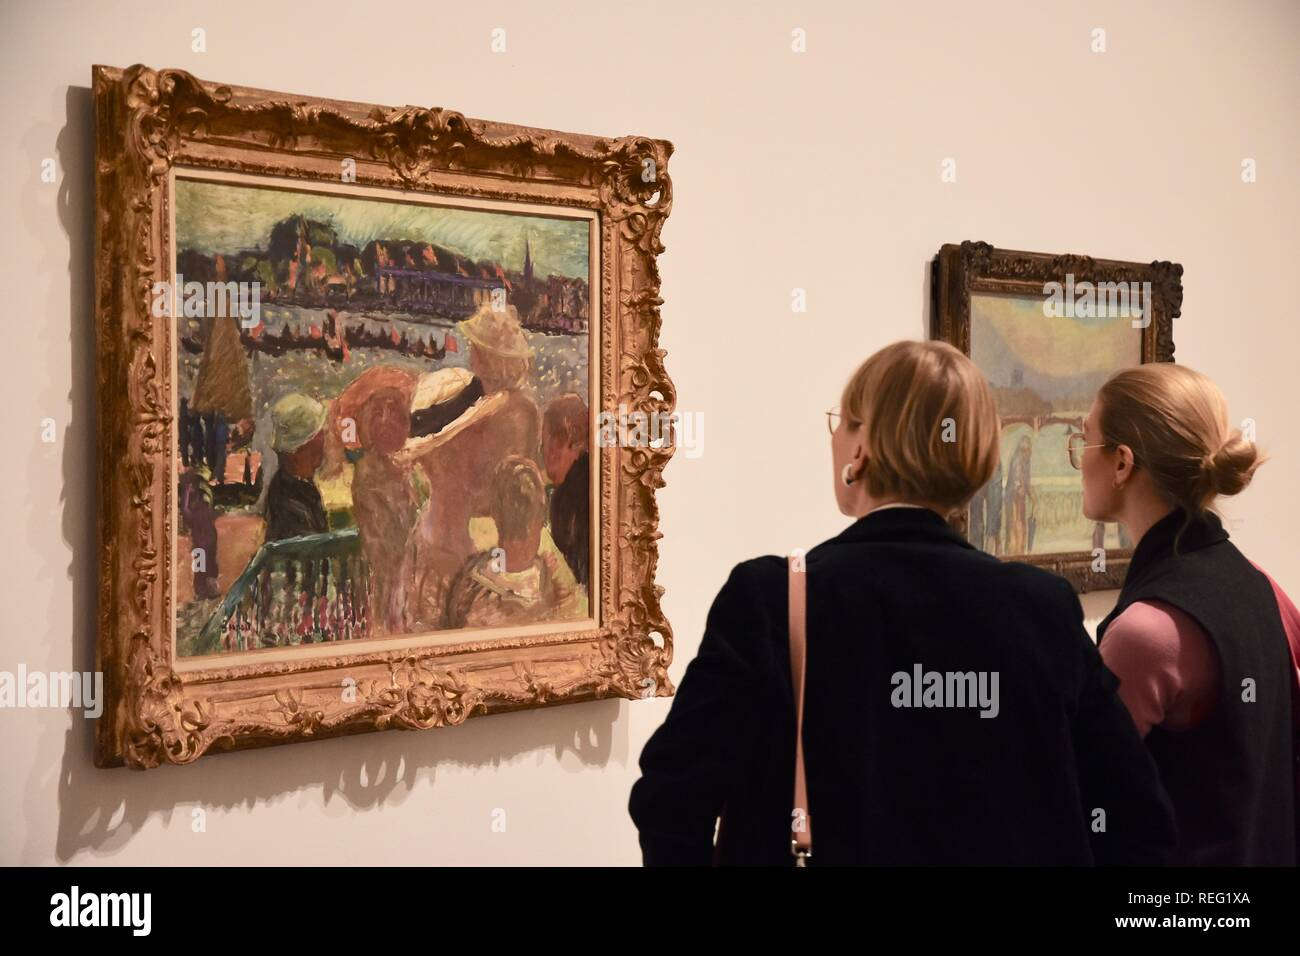 London, UK. 21st January 2019. View from Uhlenhorst Ferry House on the Outer Aister Lake with St Johannis.Fete sur l'Eau 1913.Oil on canvas.Pierre Bonnard Exhibition,'The Colour of Memory' opening from 23 Jan to 6 May 2019.Tate Modern, London.UK Credit: michael melia/Alamy Live News - Stock Image